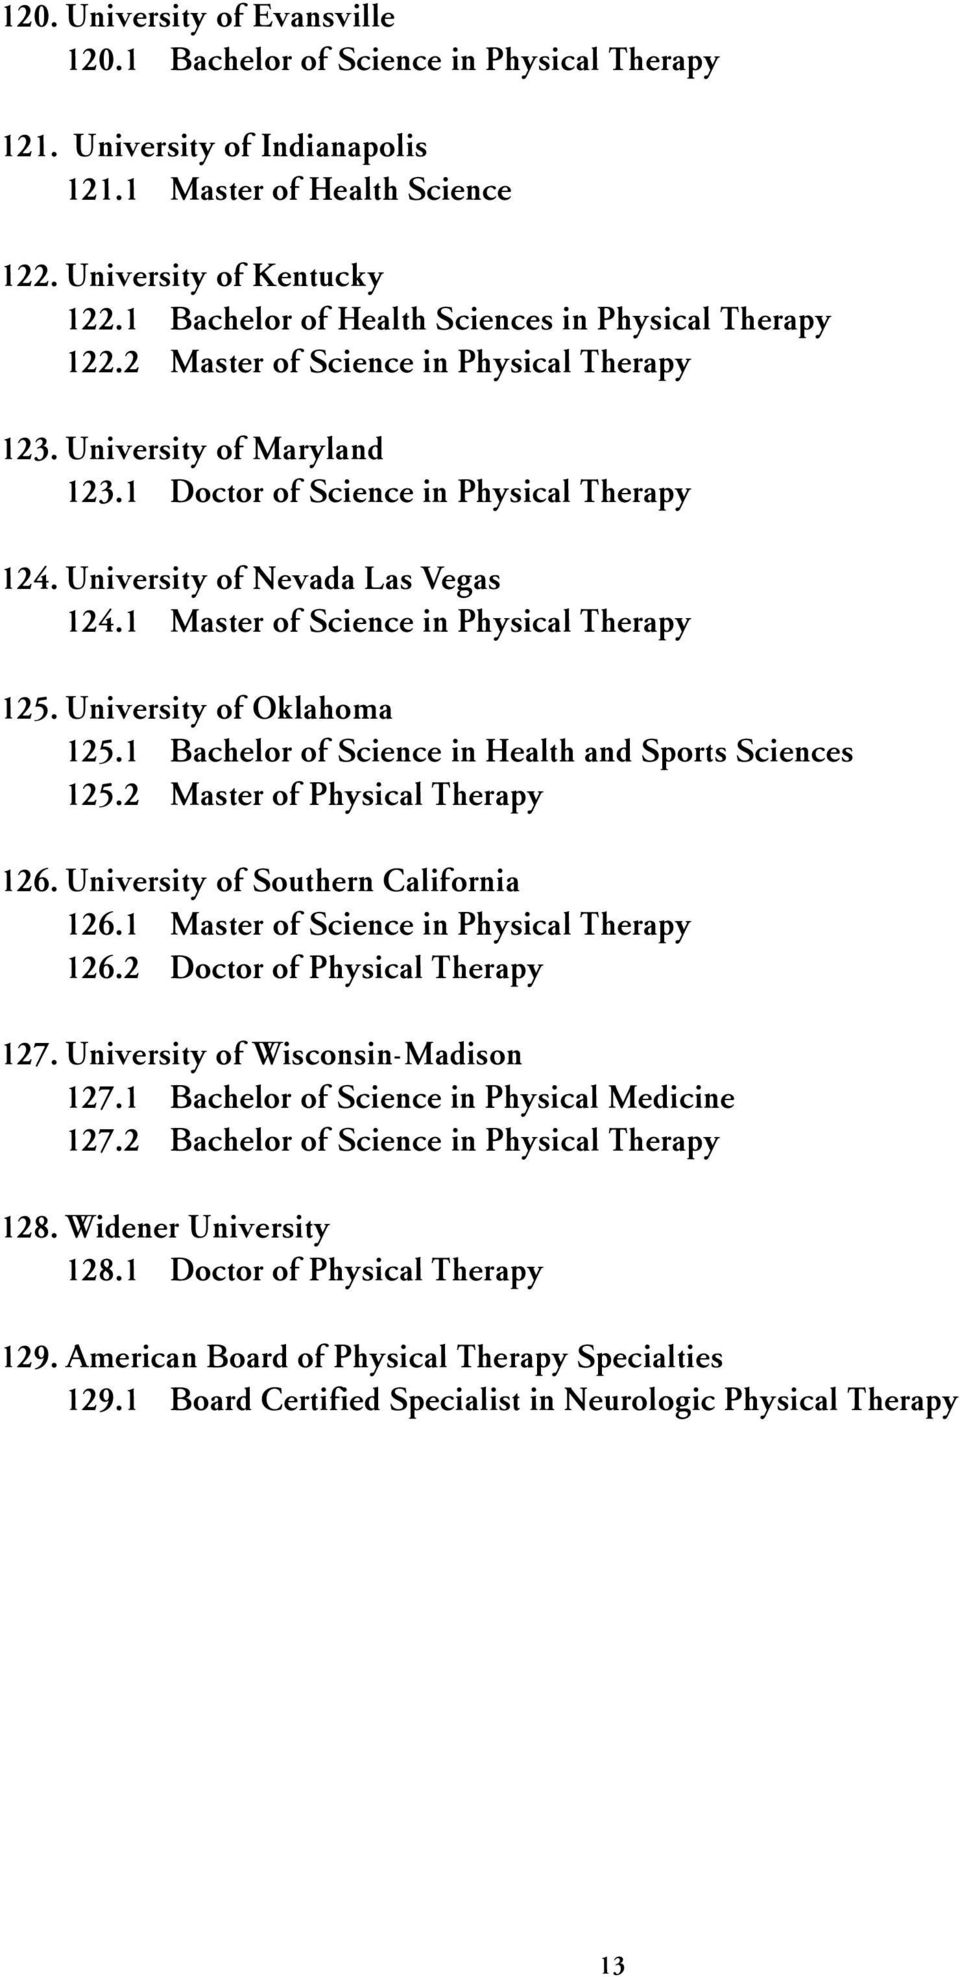 University of Nevada Las Vegas 124.1 Master of Science in Physical Therapy 125. University of Oklahoma 125.1 Bachelor of Science in Health and Sports Sciences 125.2 Master of Physical Therapy 126.